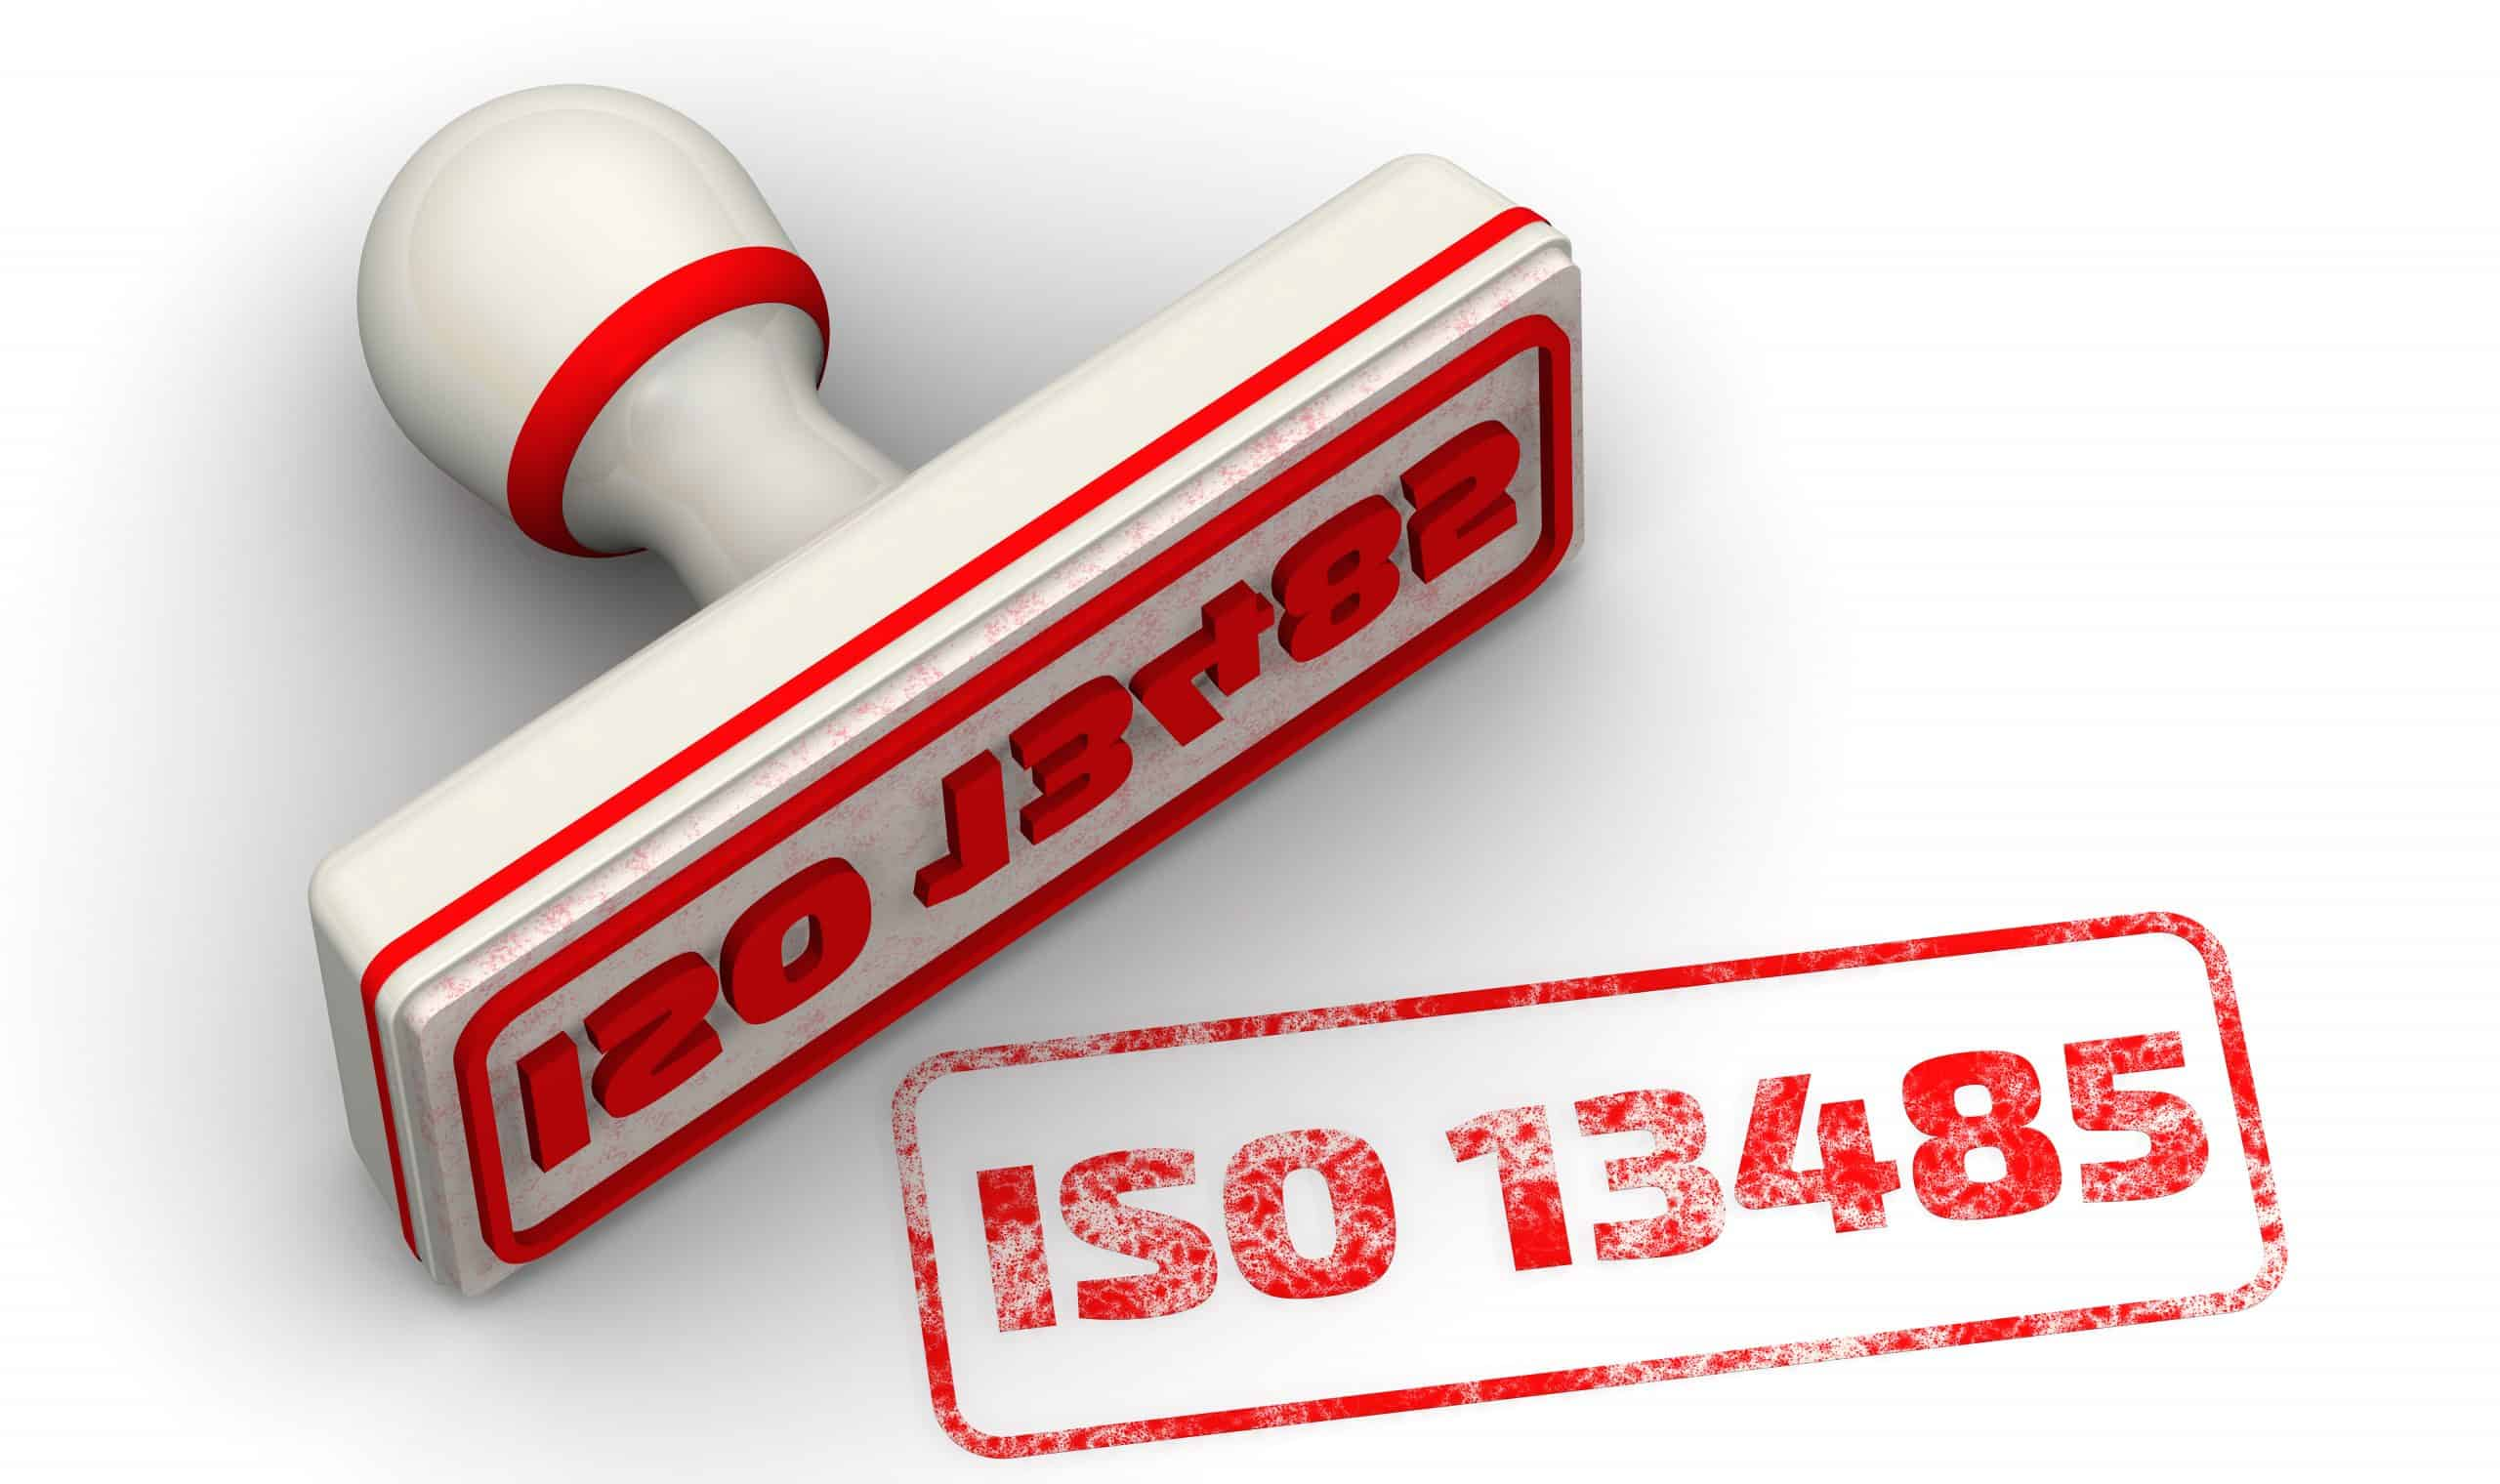 Red ISO 13485 seal stamp